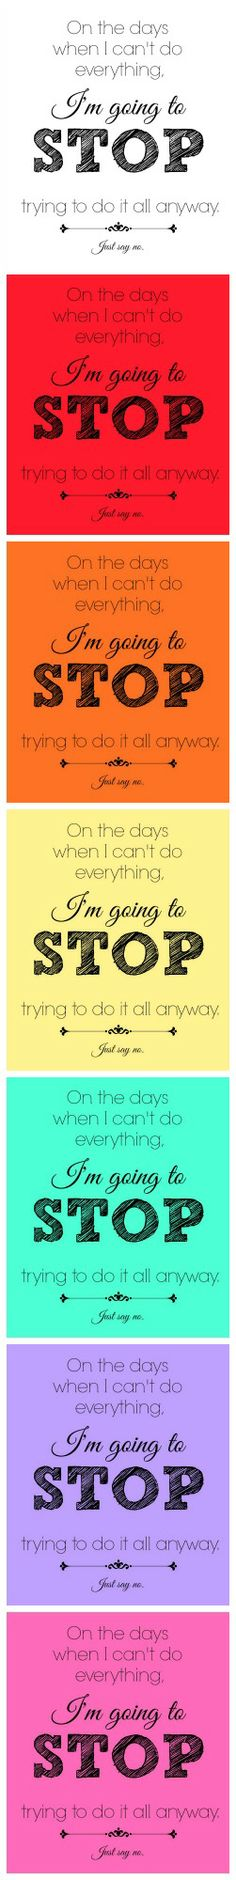 FREE printable | On the days when I can't do everything, I'm going to stop trying to do it all anyway. Just say no. | LOVE THIS!